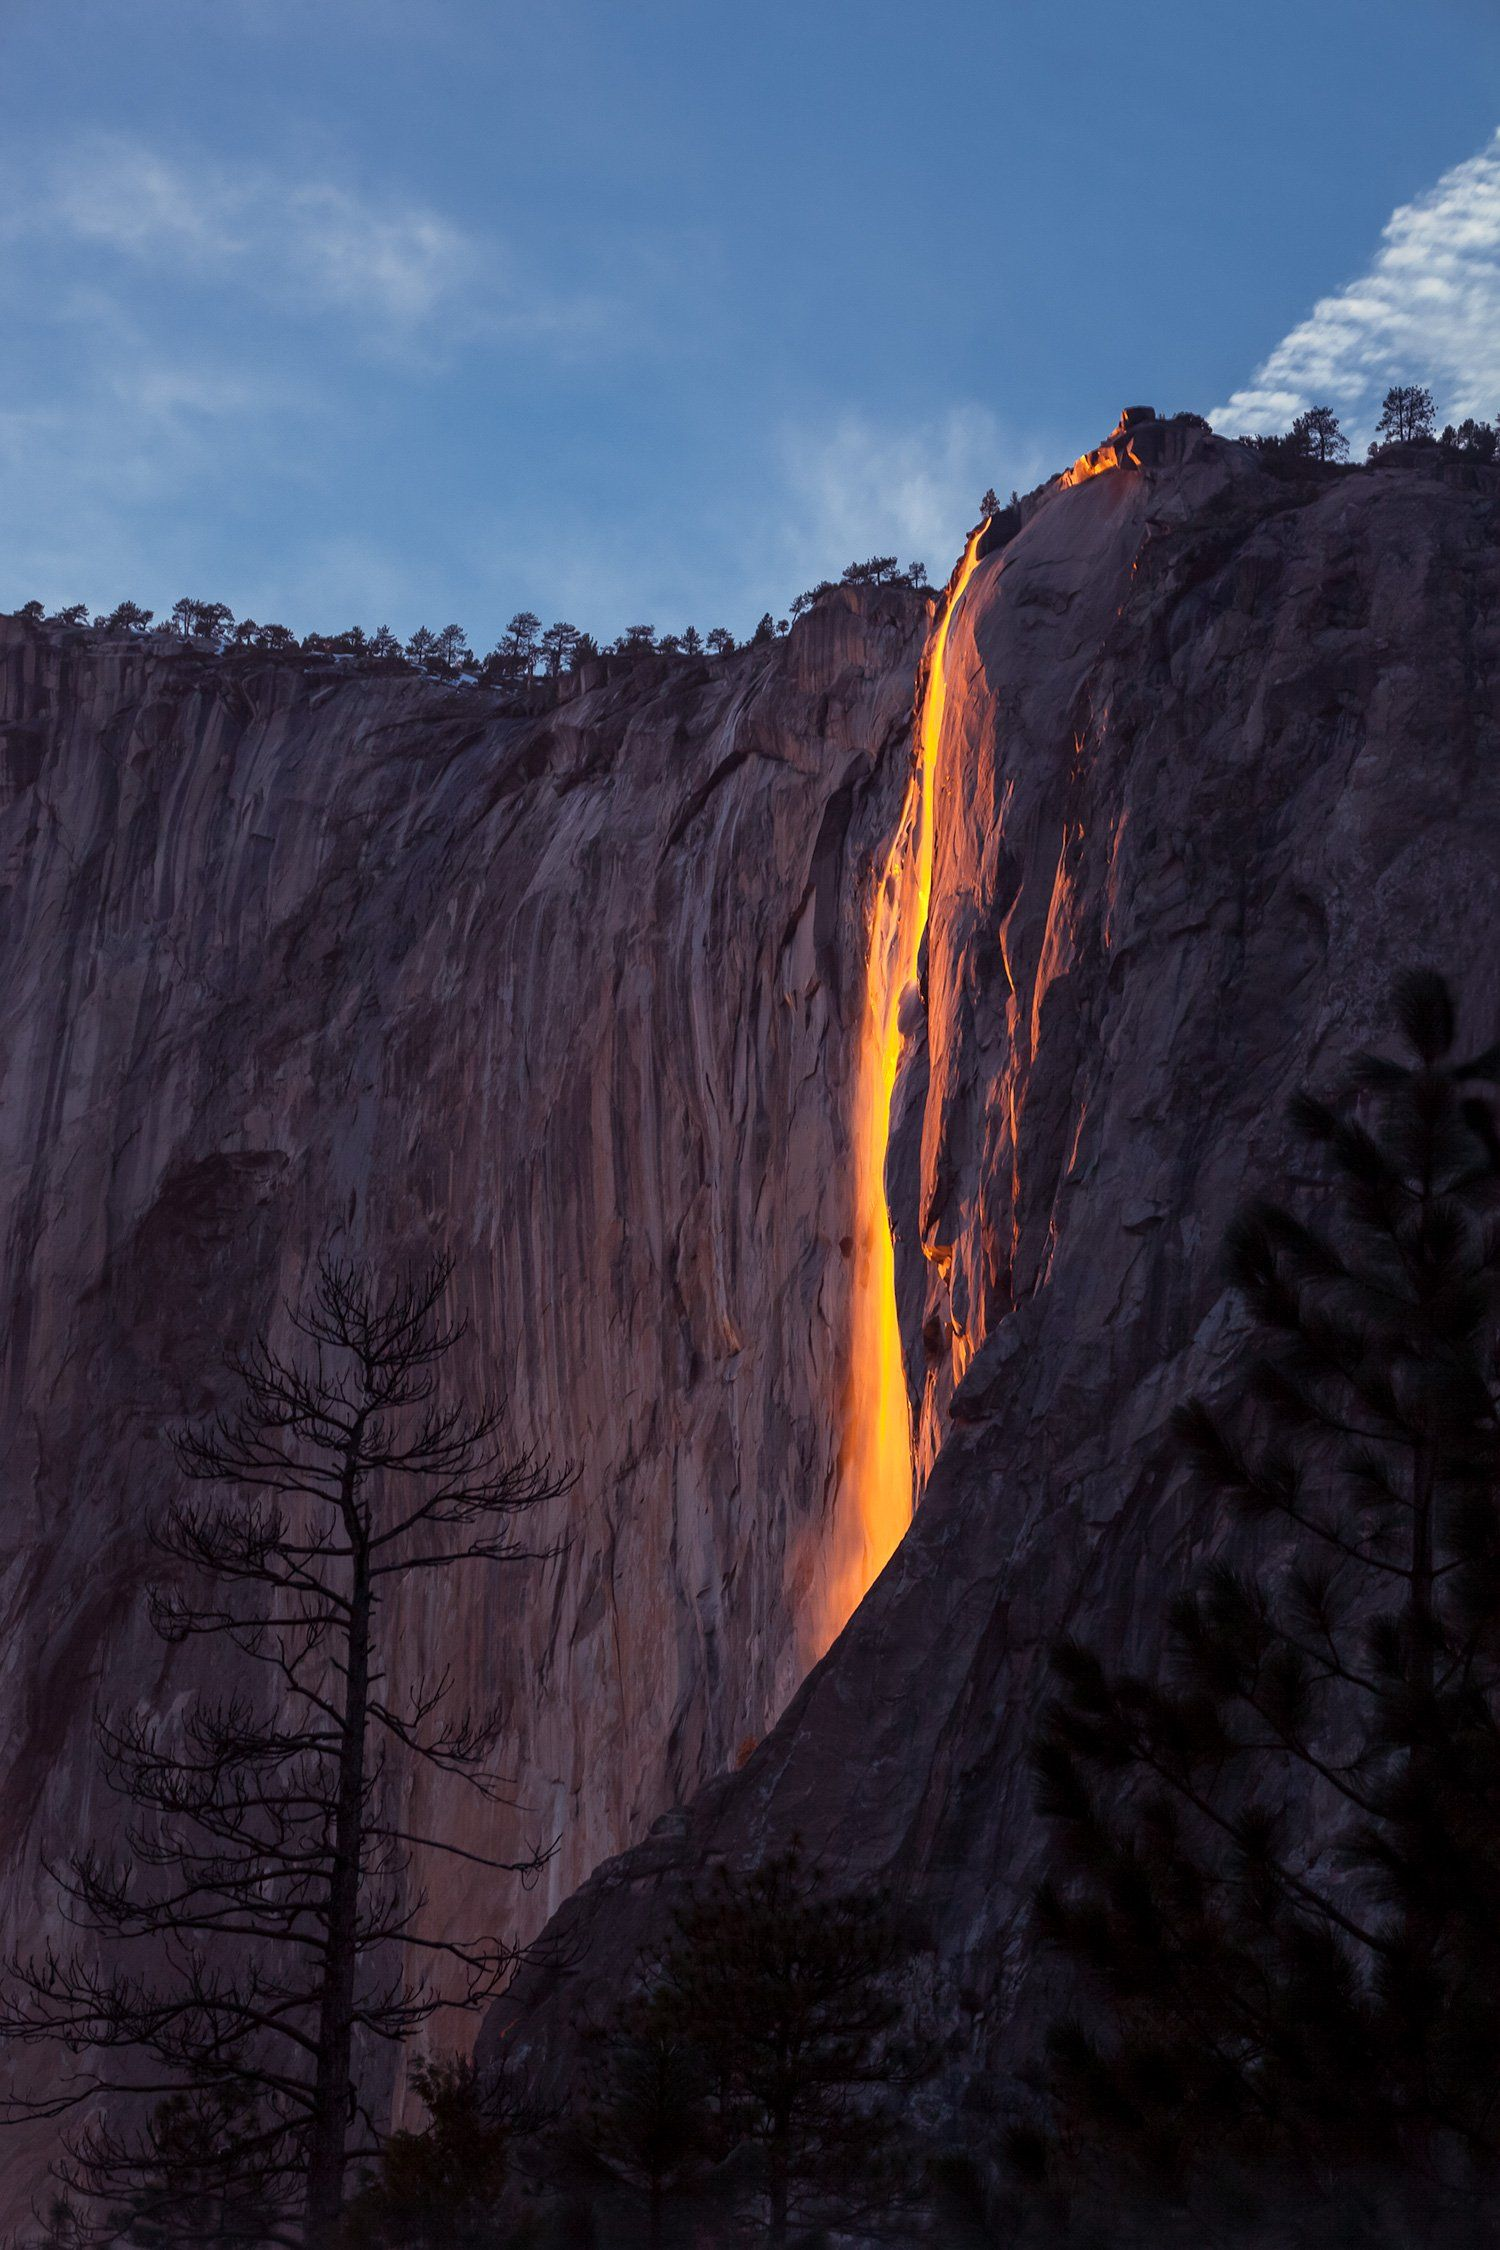 9 Tips for Photographing Yosemite's Fire Fall